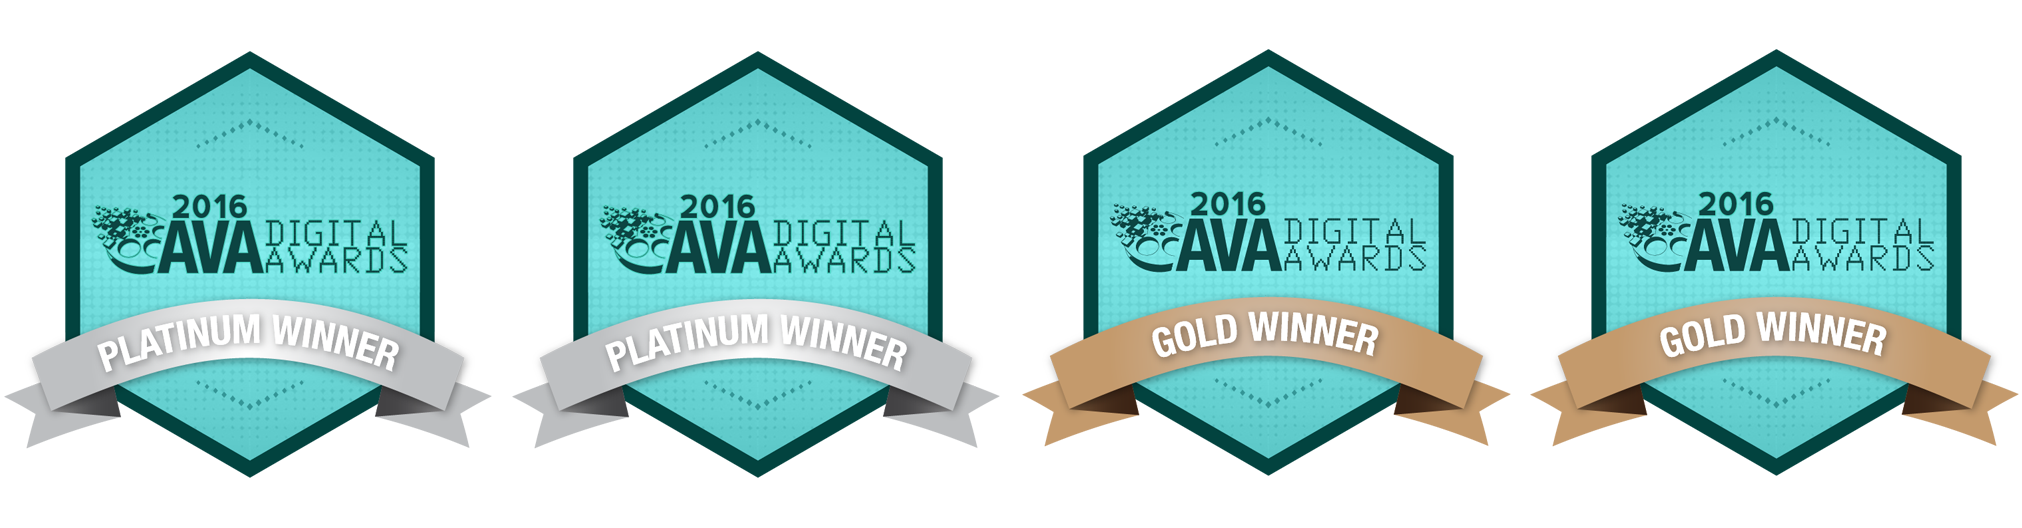 2016 Ava Digital Award for Video Production in Edmonton, Alberta.